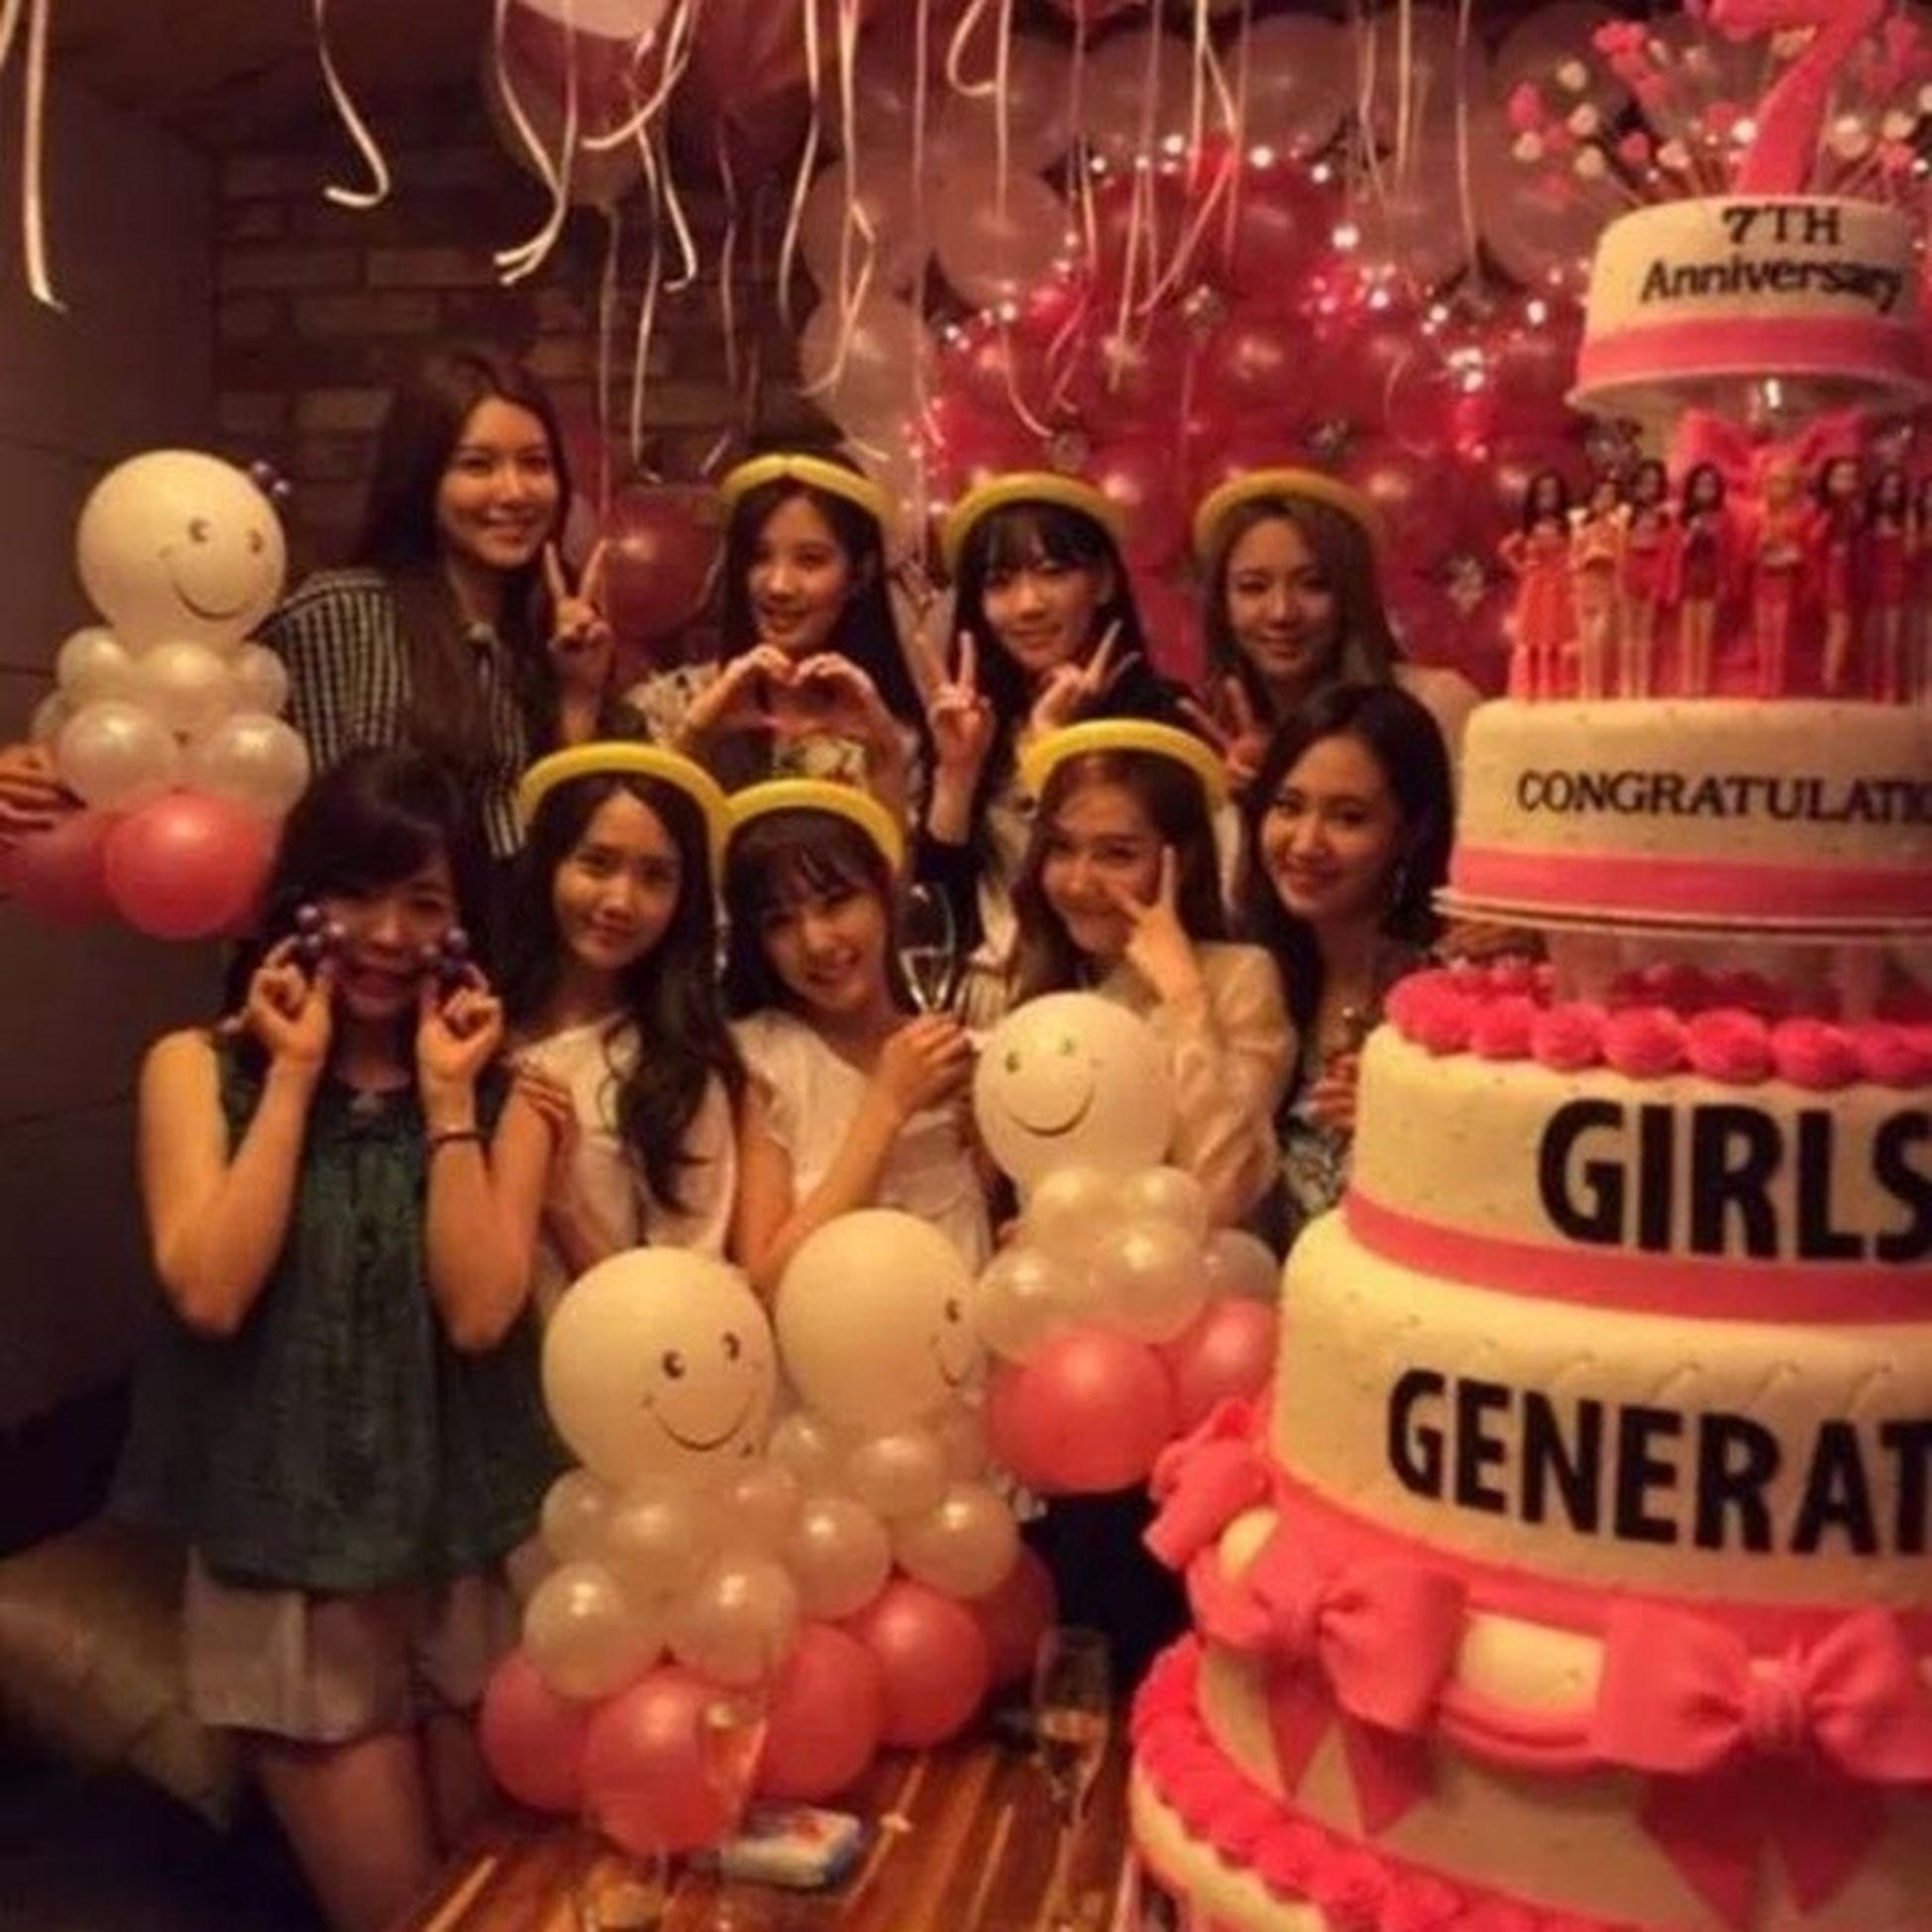 Happy7thAnniversary SNSD :* .. Hopefully long life, Many of his Fans, Mutual affection, and pity for S♡NE .. I LOVE YOU :* Happy7thAnniversarySNSD SNSDBirthday Taeyeon Jessica Sunny Tiffany Hyoyeon Yuri Sooyoung Yoona Seohyun SONE Indonesia